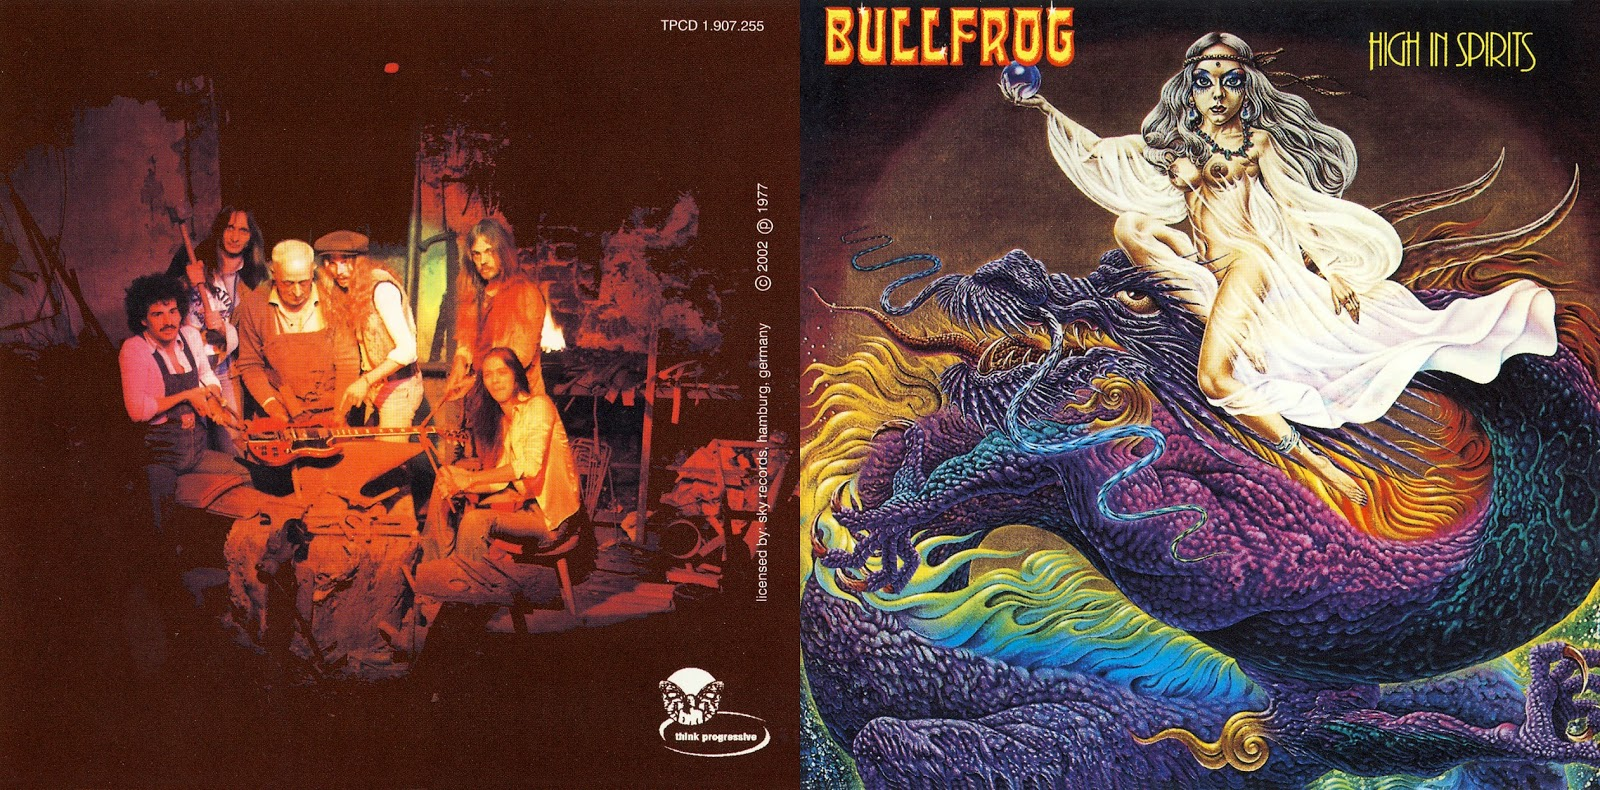 Bullfrog - High In Spirits (1977)